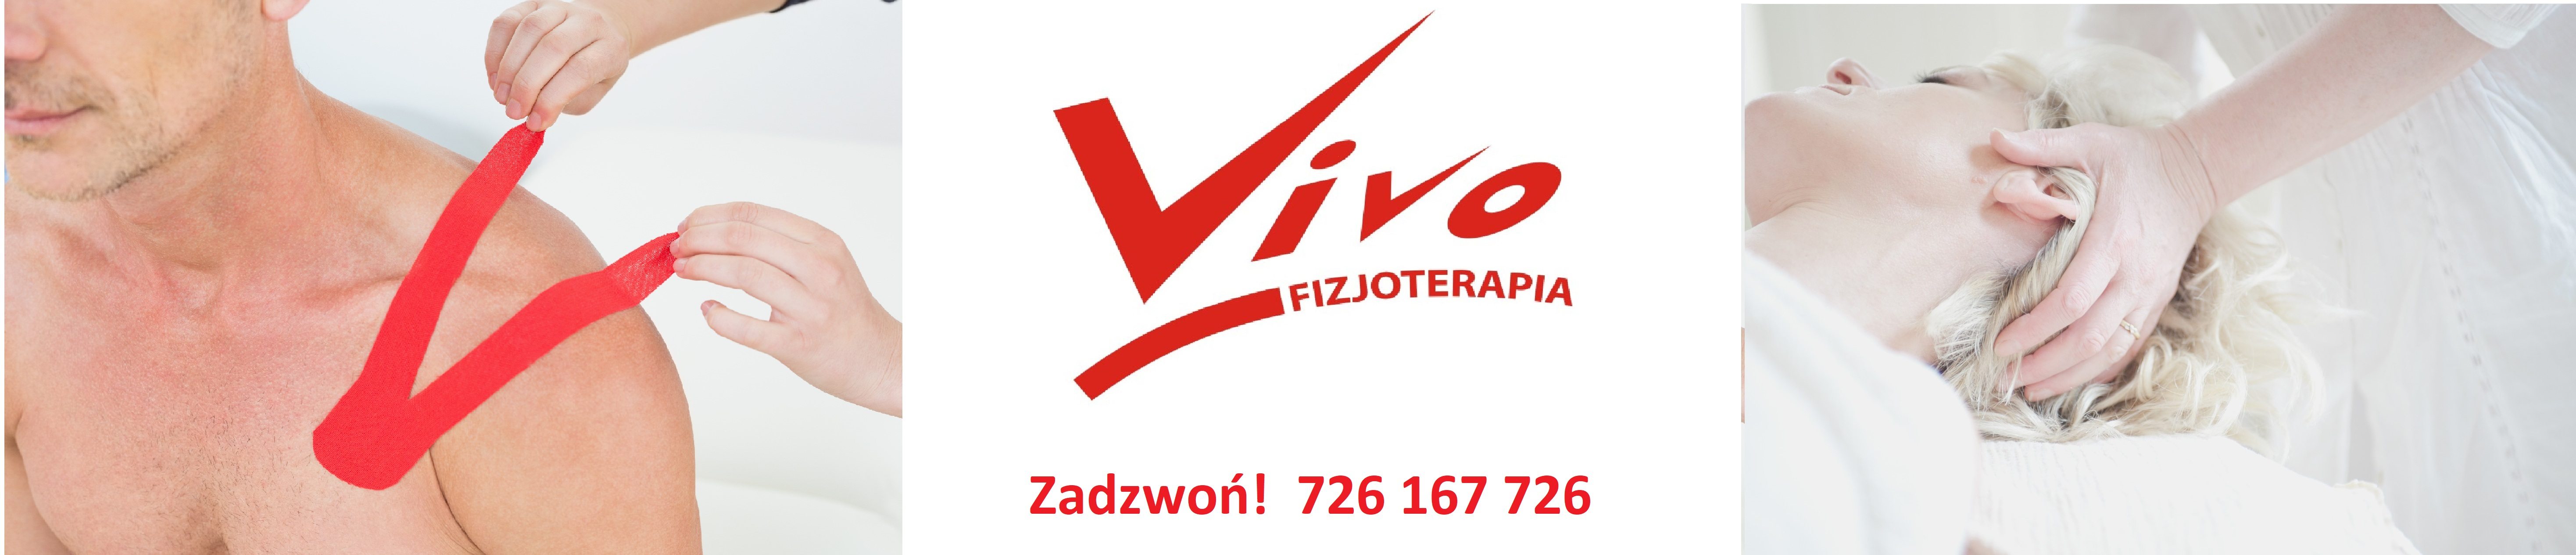 VIVO FIZJOTERAPIA